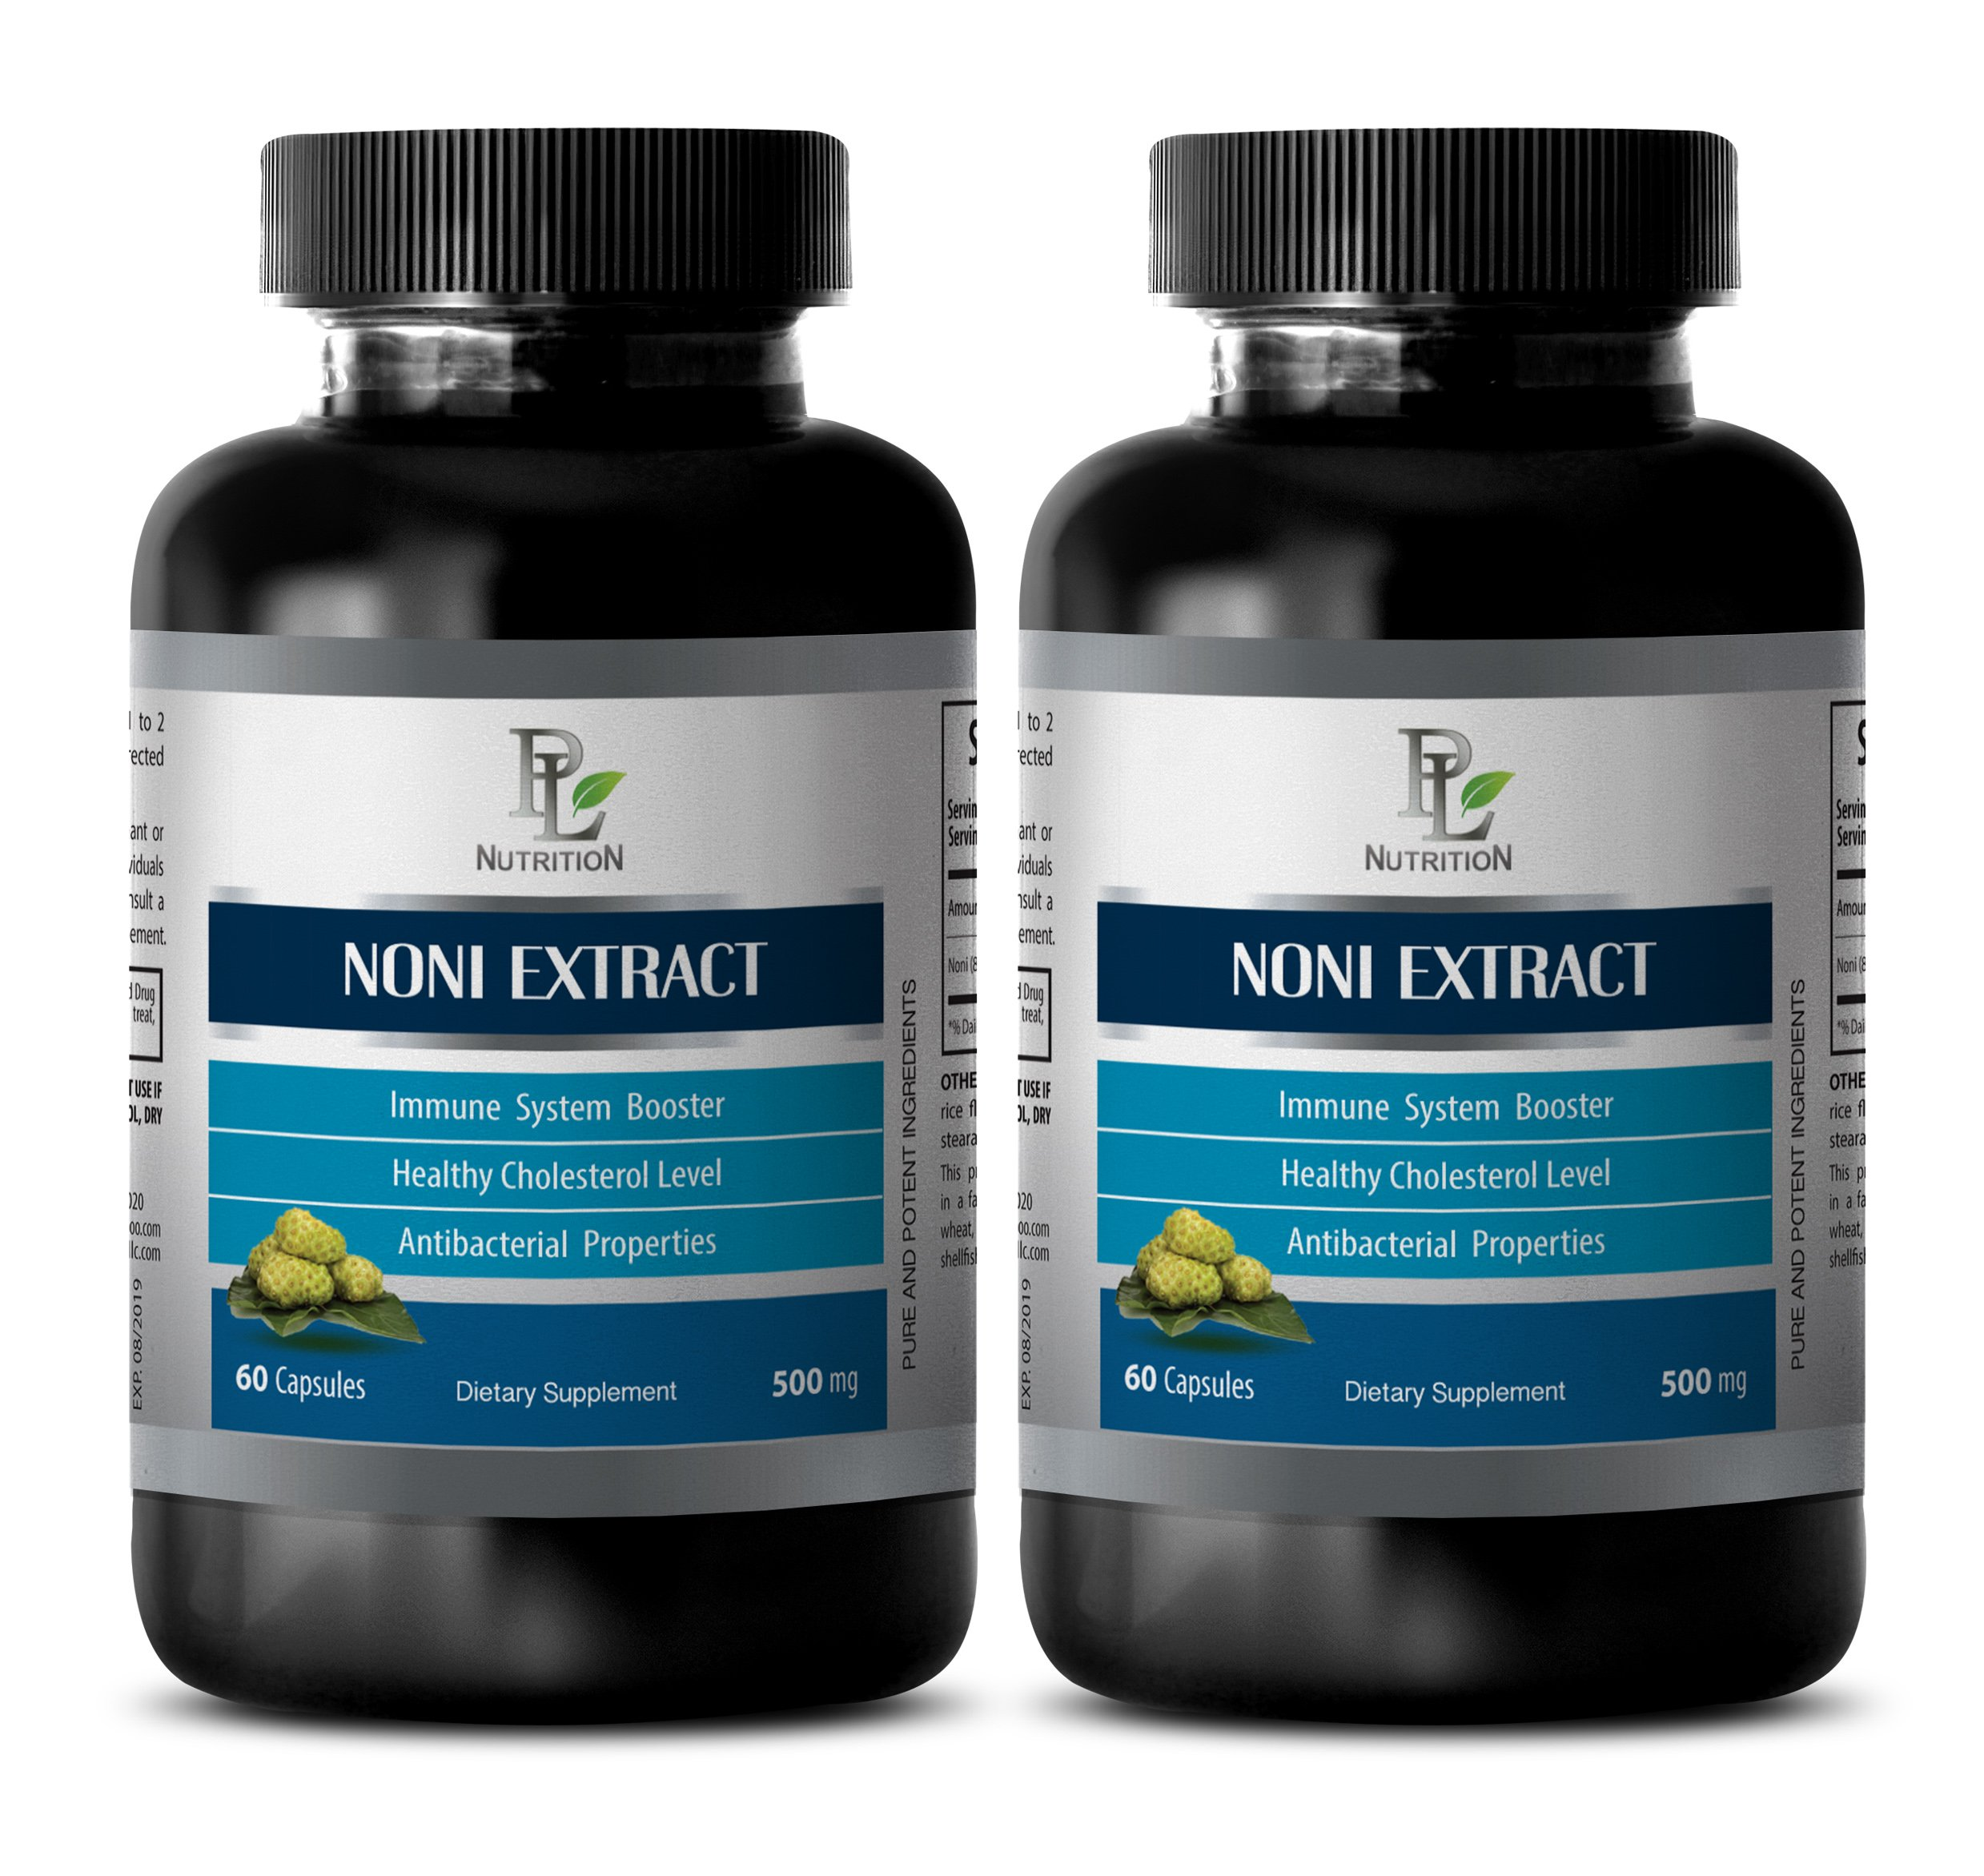 Natural digestive aid - NONI EXTRACT 500 Mg - Noni pills - 2 Bottles 120 Capsules